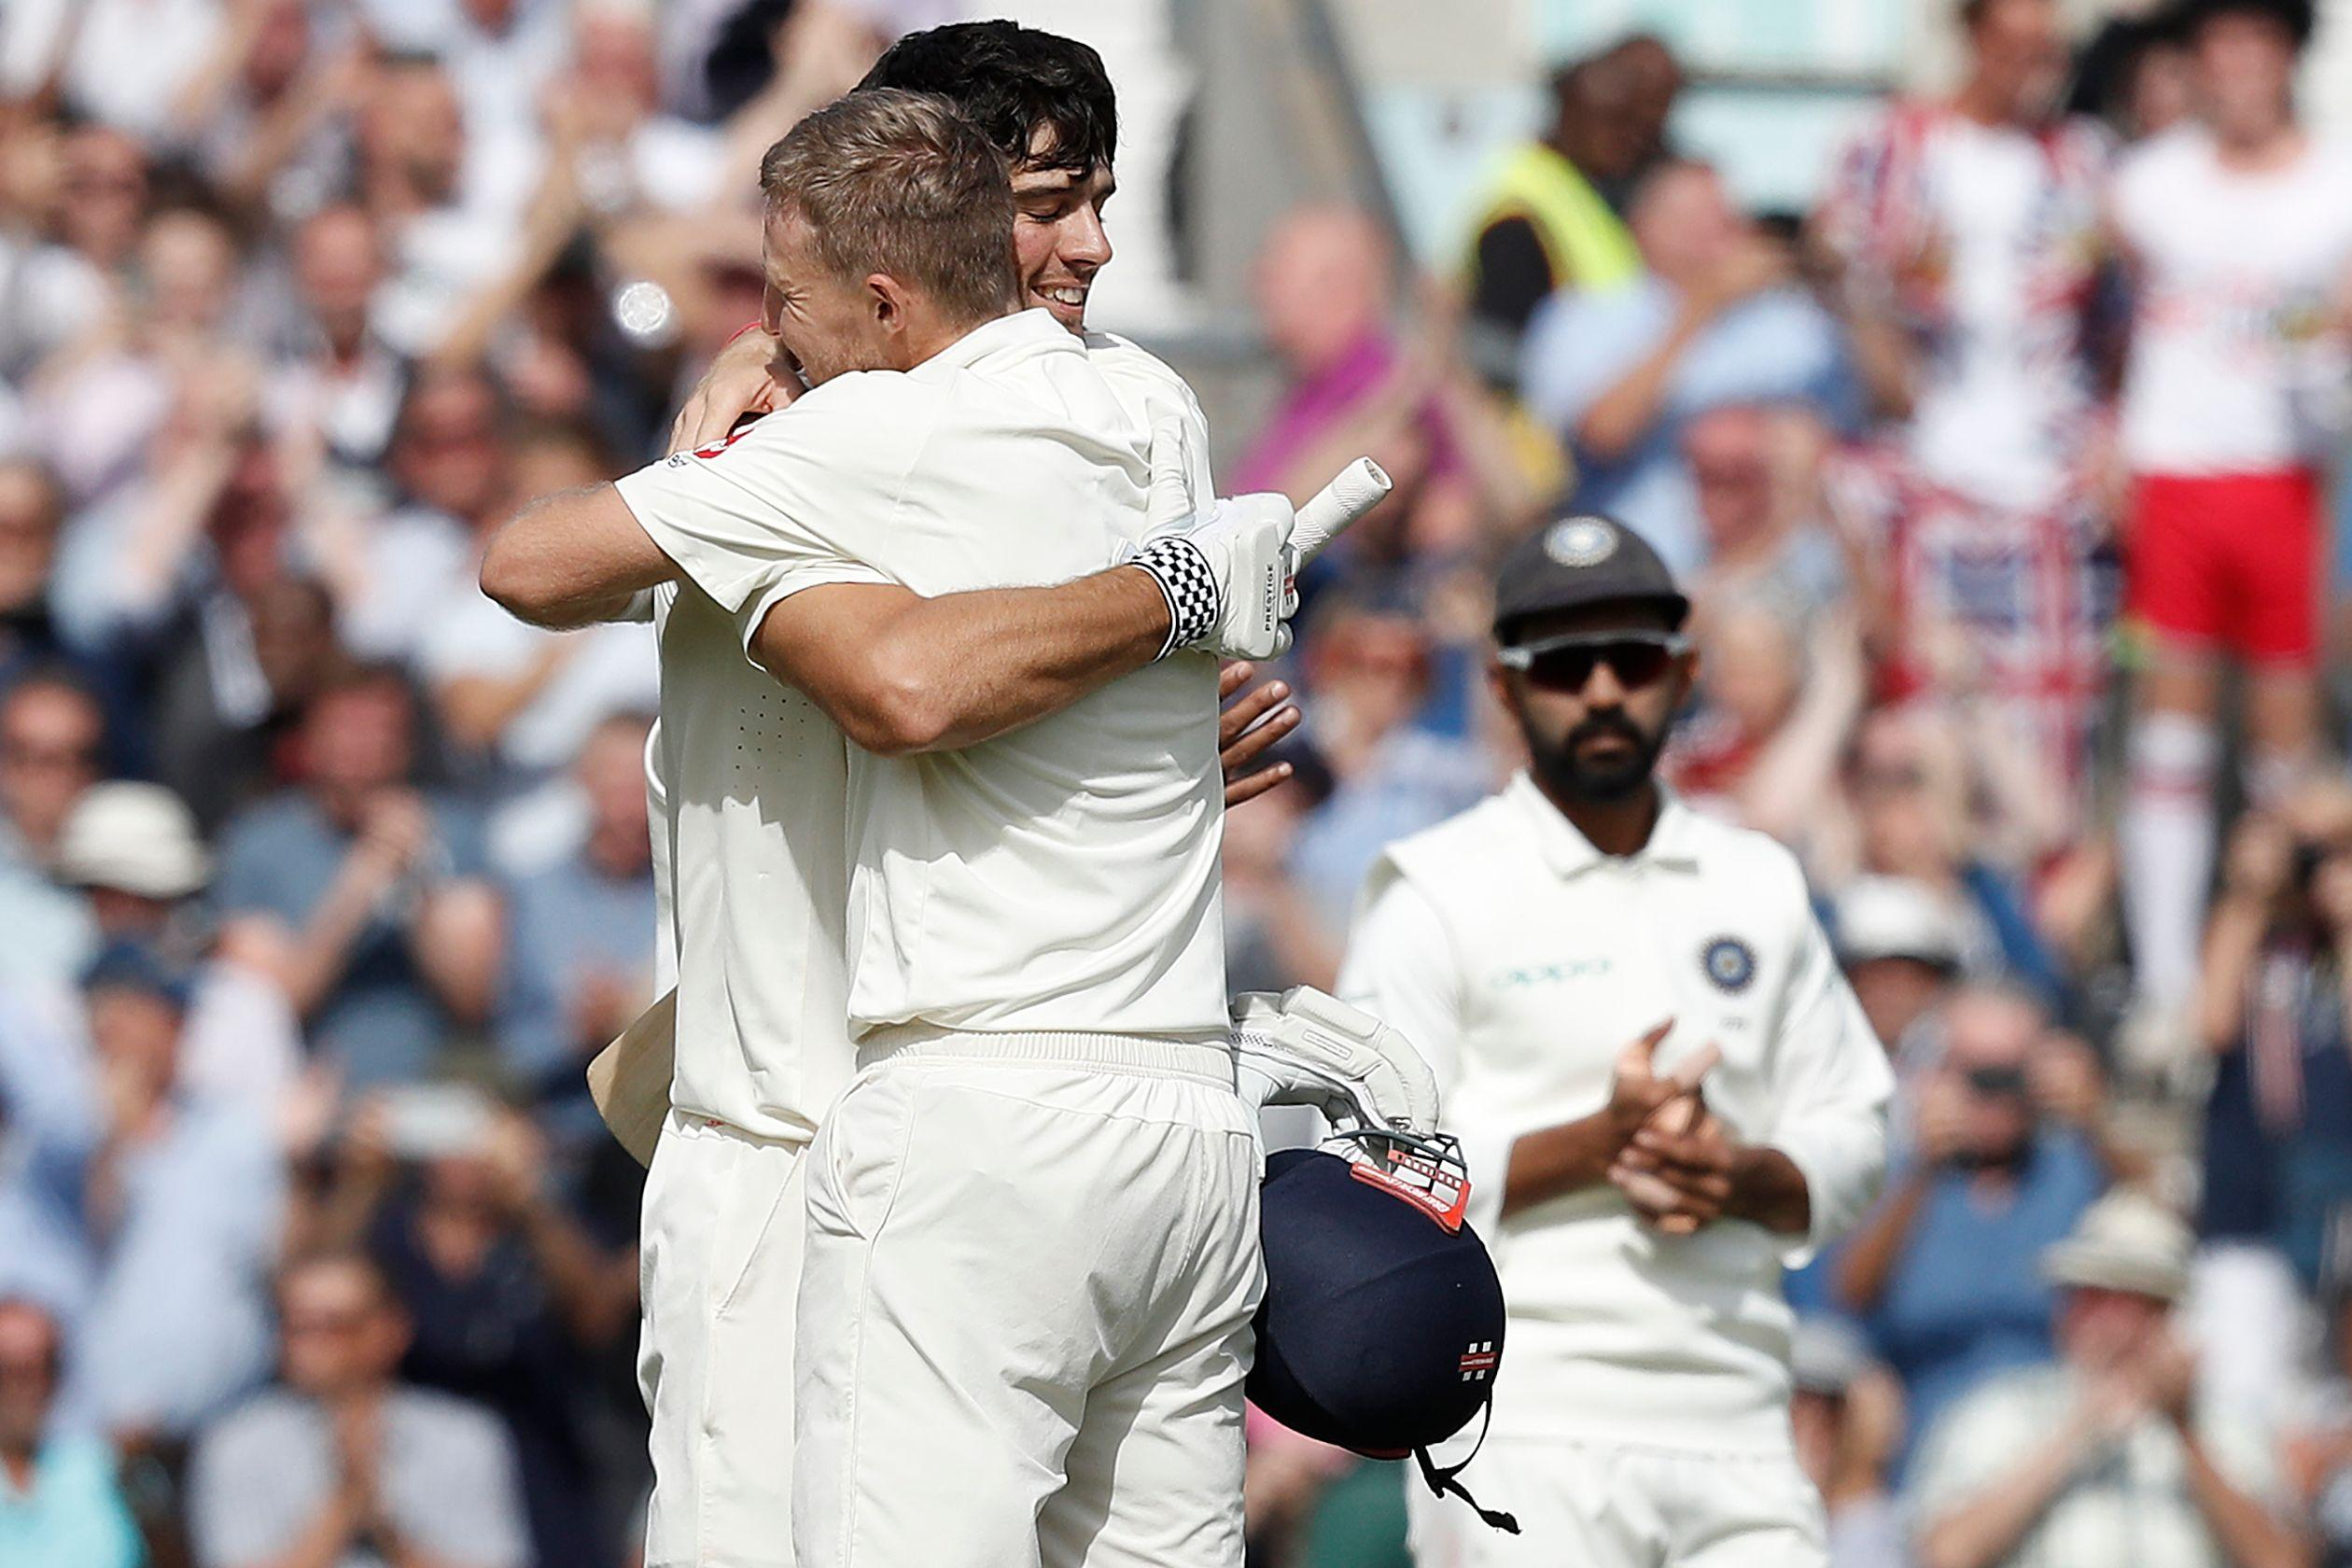 Previous captain Cook and current captain Root embrace as the former made his century